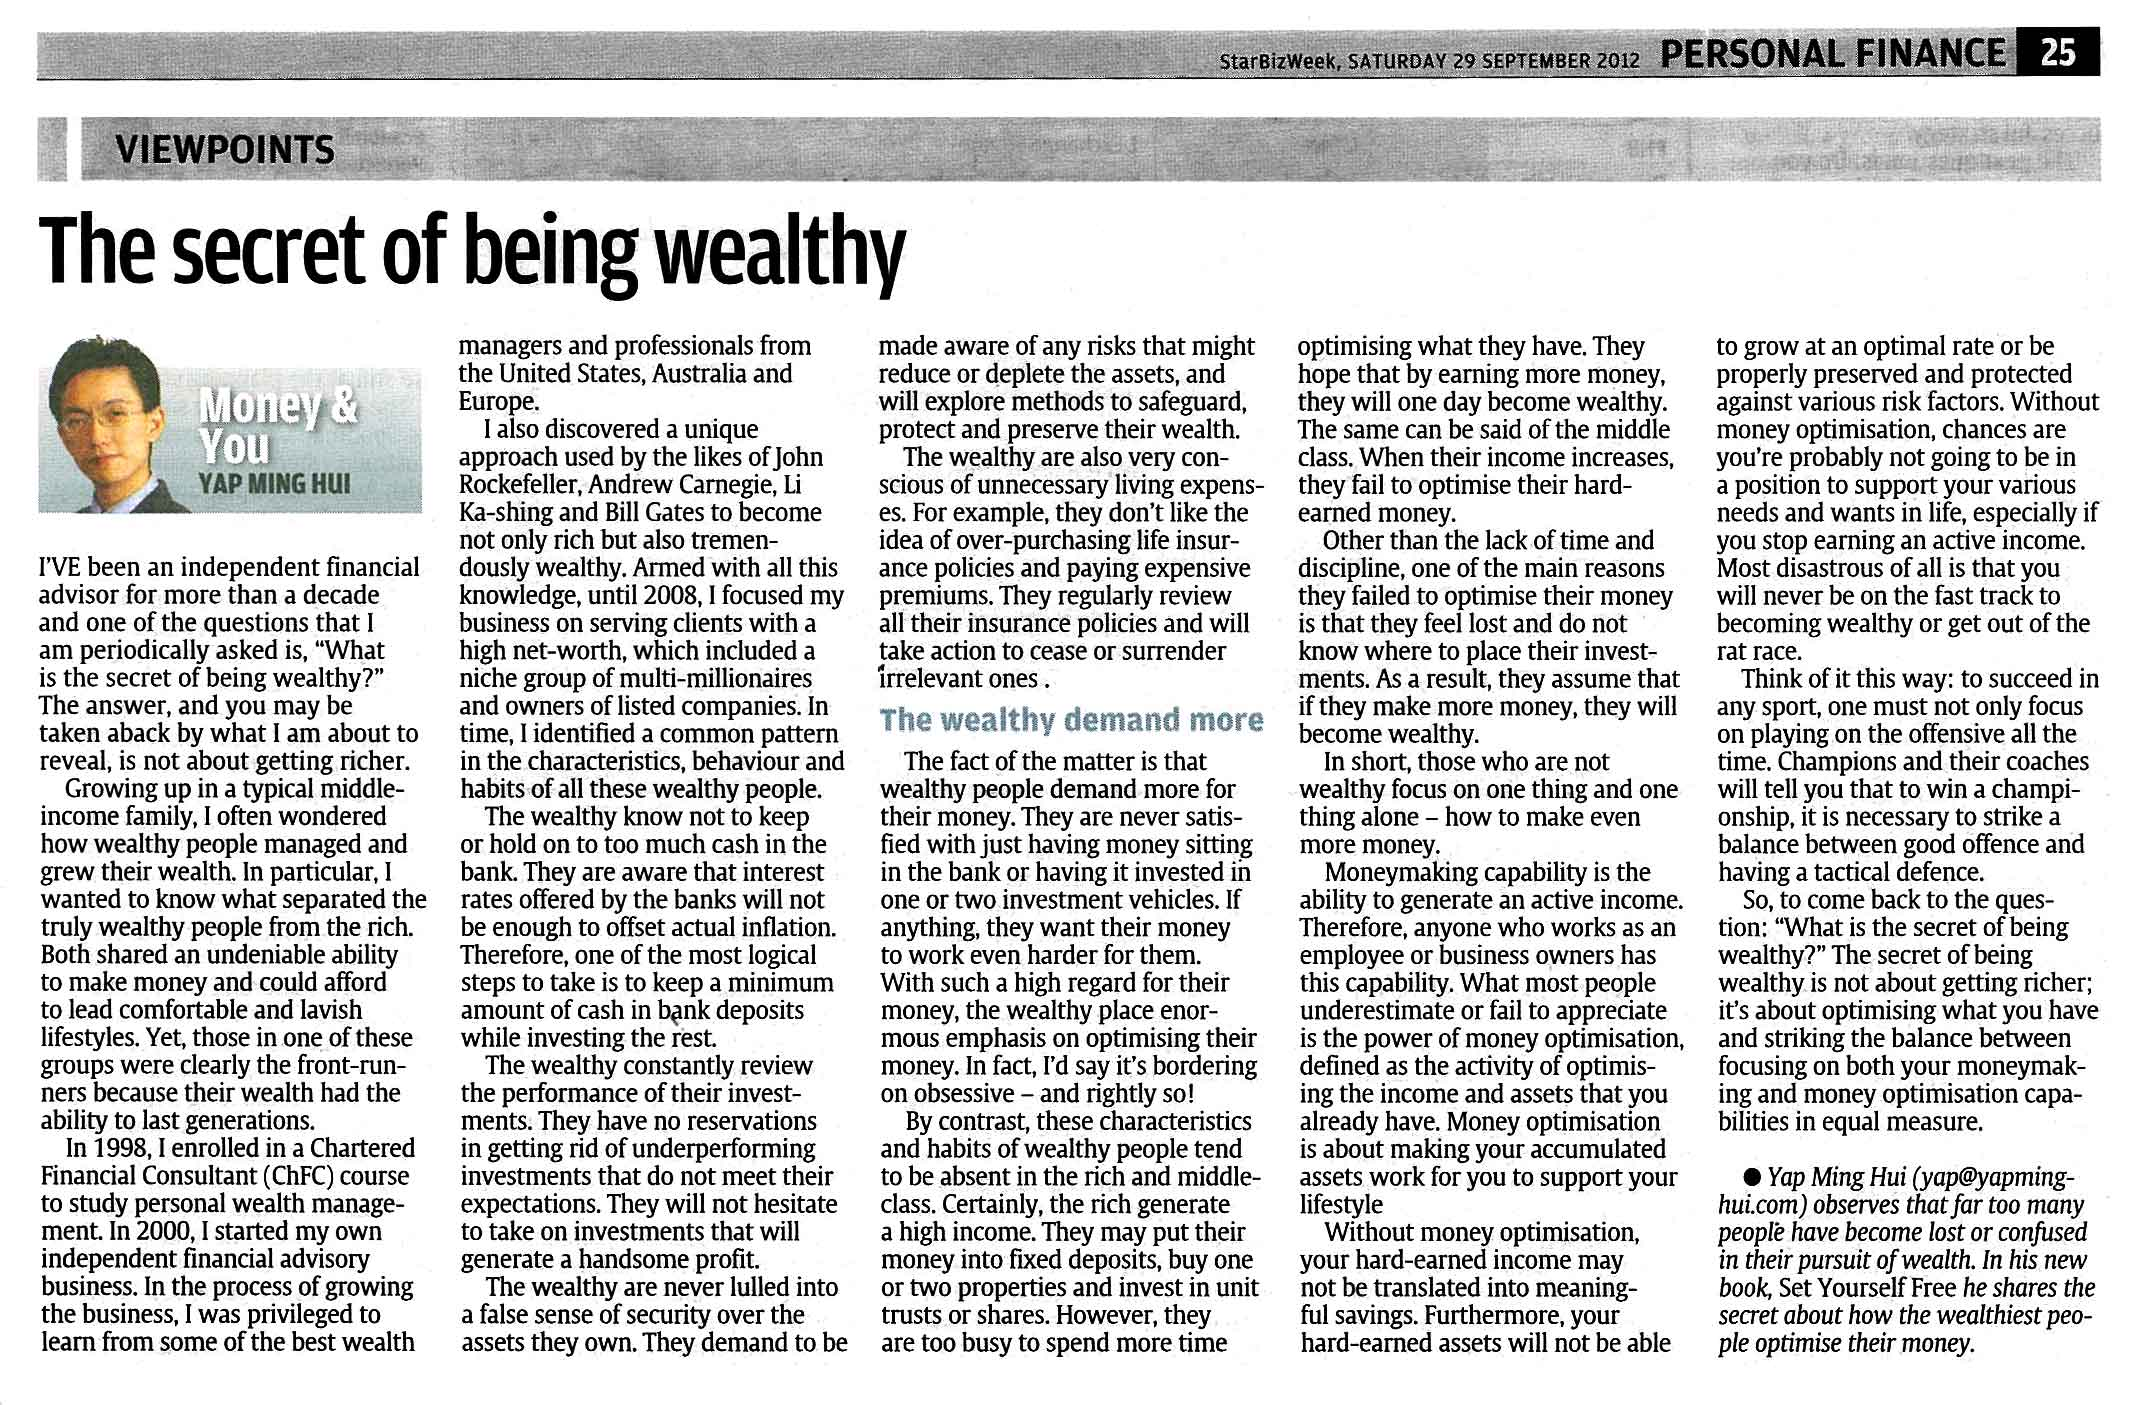 The Secret of being Wealthy - 29 Sep 2012